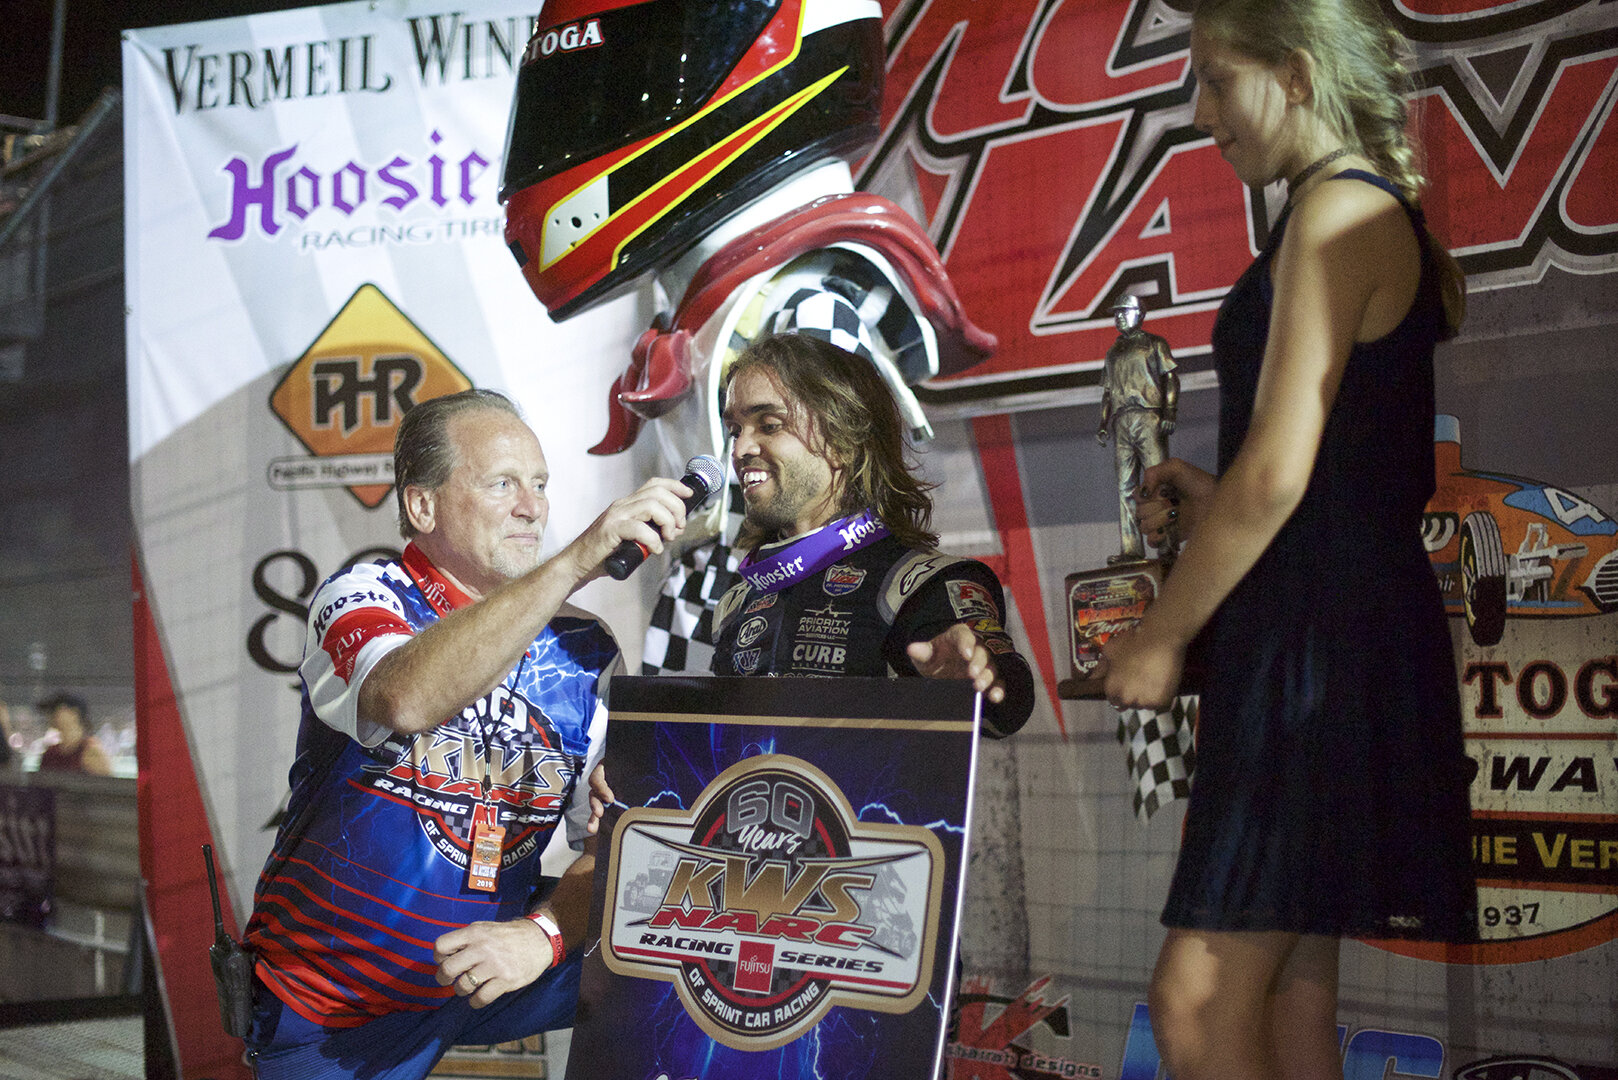 Rico Abreu celebrating his 11th win at Calistoga. The trophy girl (Leroy Van Conett's great grand daughter Kailey) holds the coveted Louis statue.